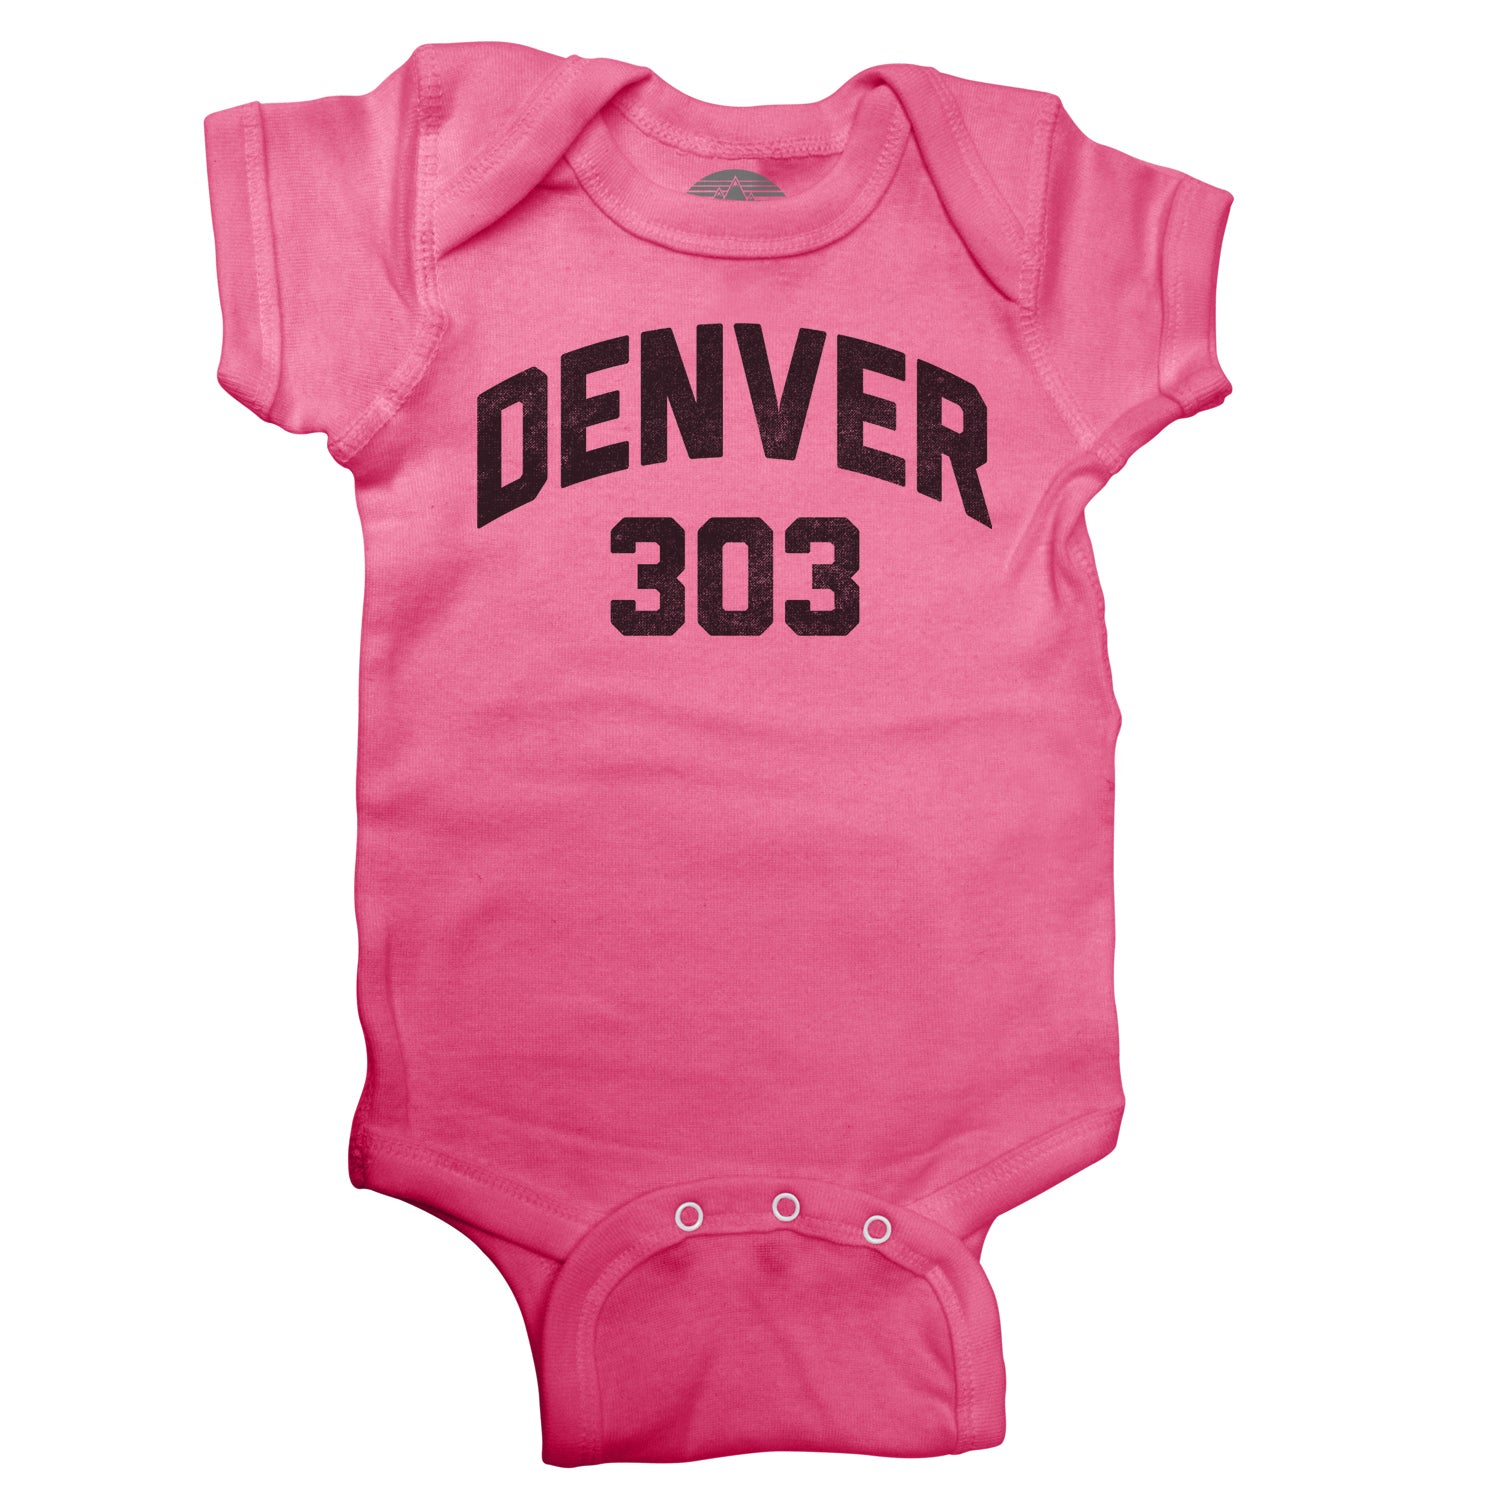 Denver 303 Area Code Infant Bodysuit - Unisex Fit